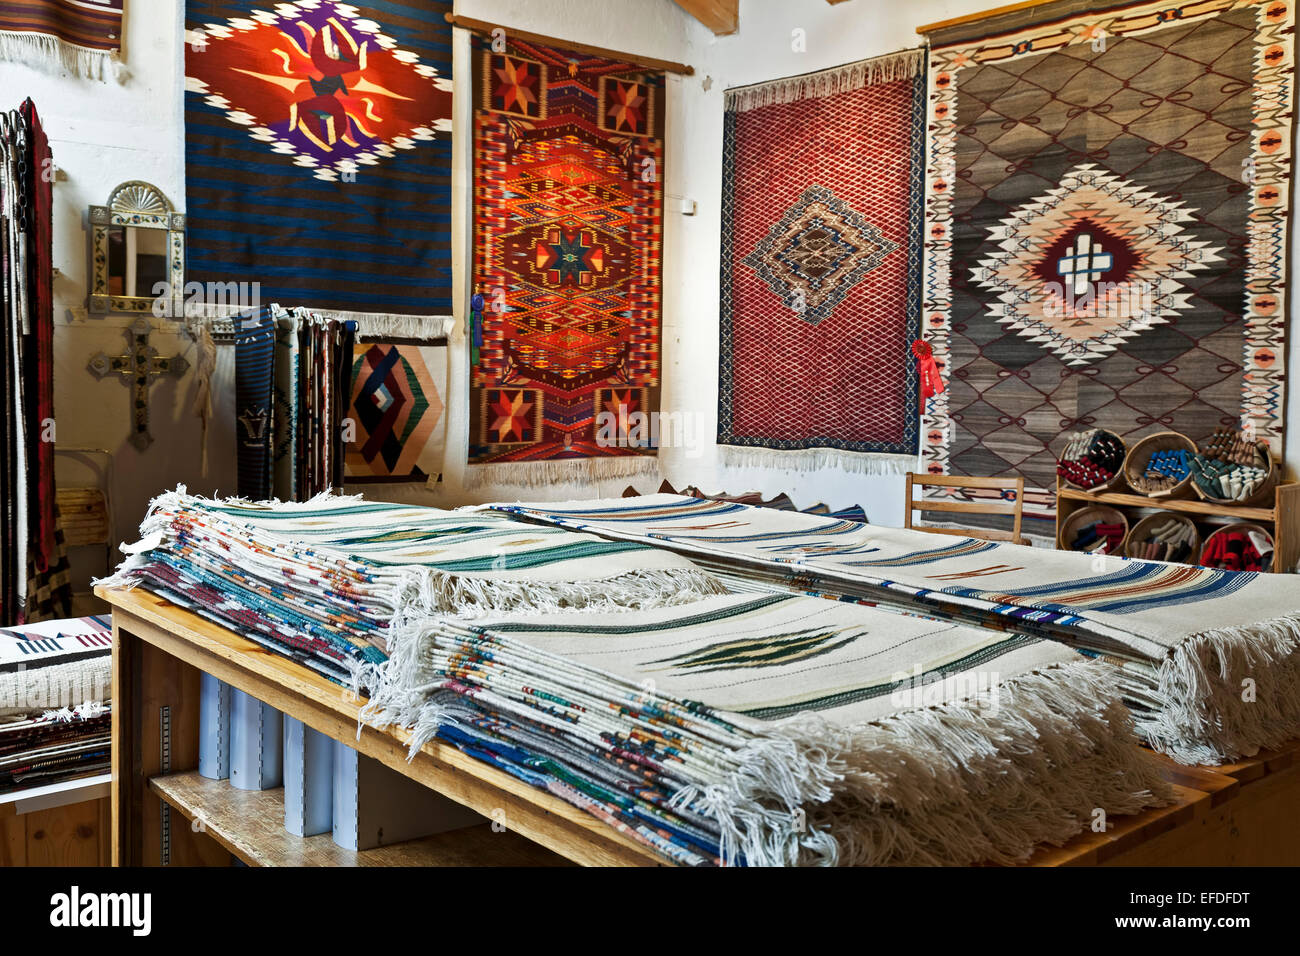 Wool blankets and rugs, Centinela Traditional Arts, Chimayo, New Mexico USA - Stock Image